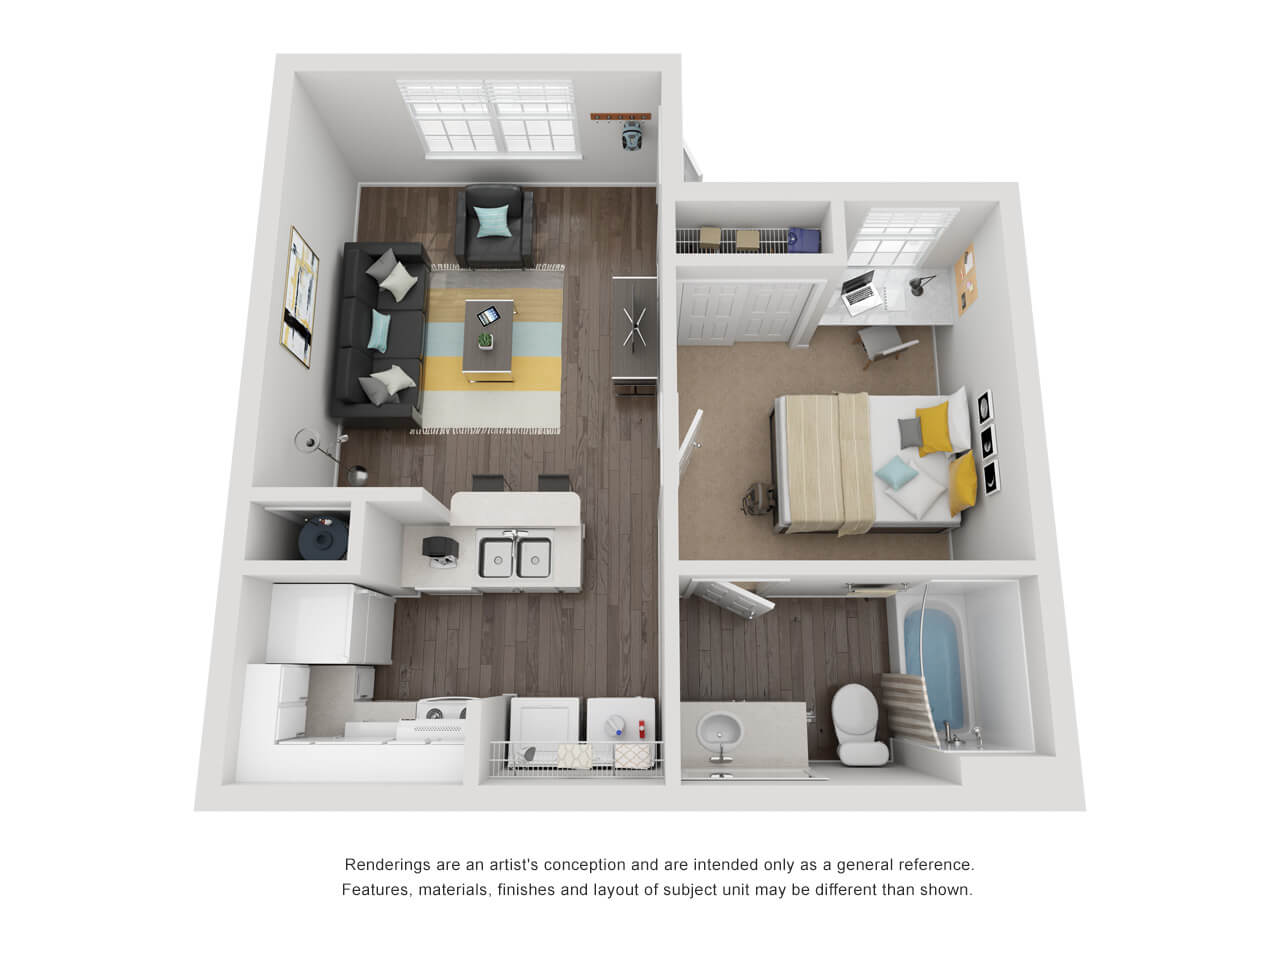 1 bedroom 1 bathroom layout with living and kitchen on left and balcony, bedroom, and bathroom on right.